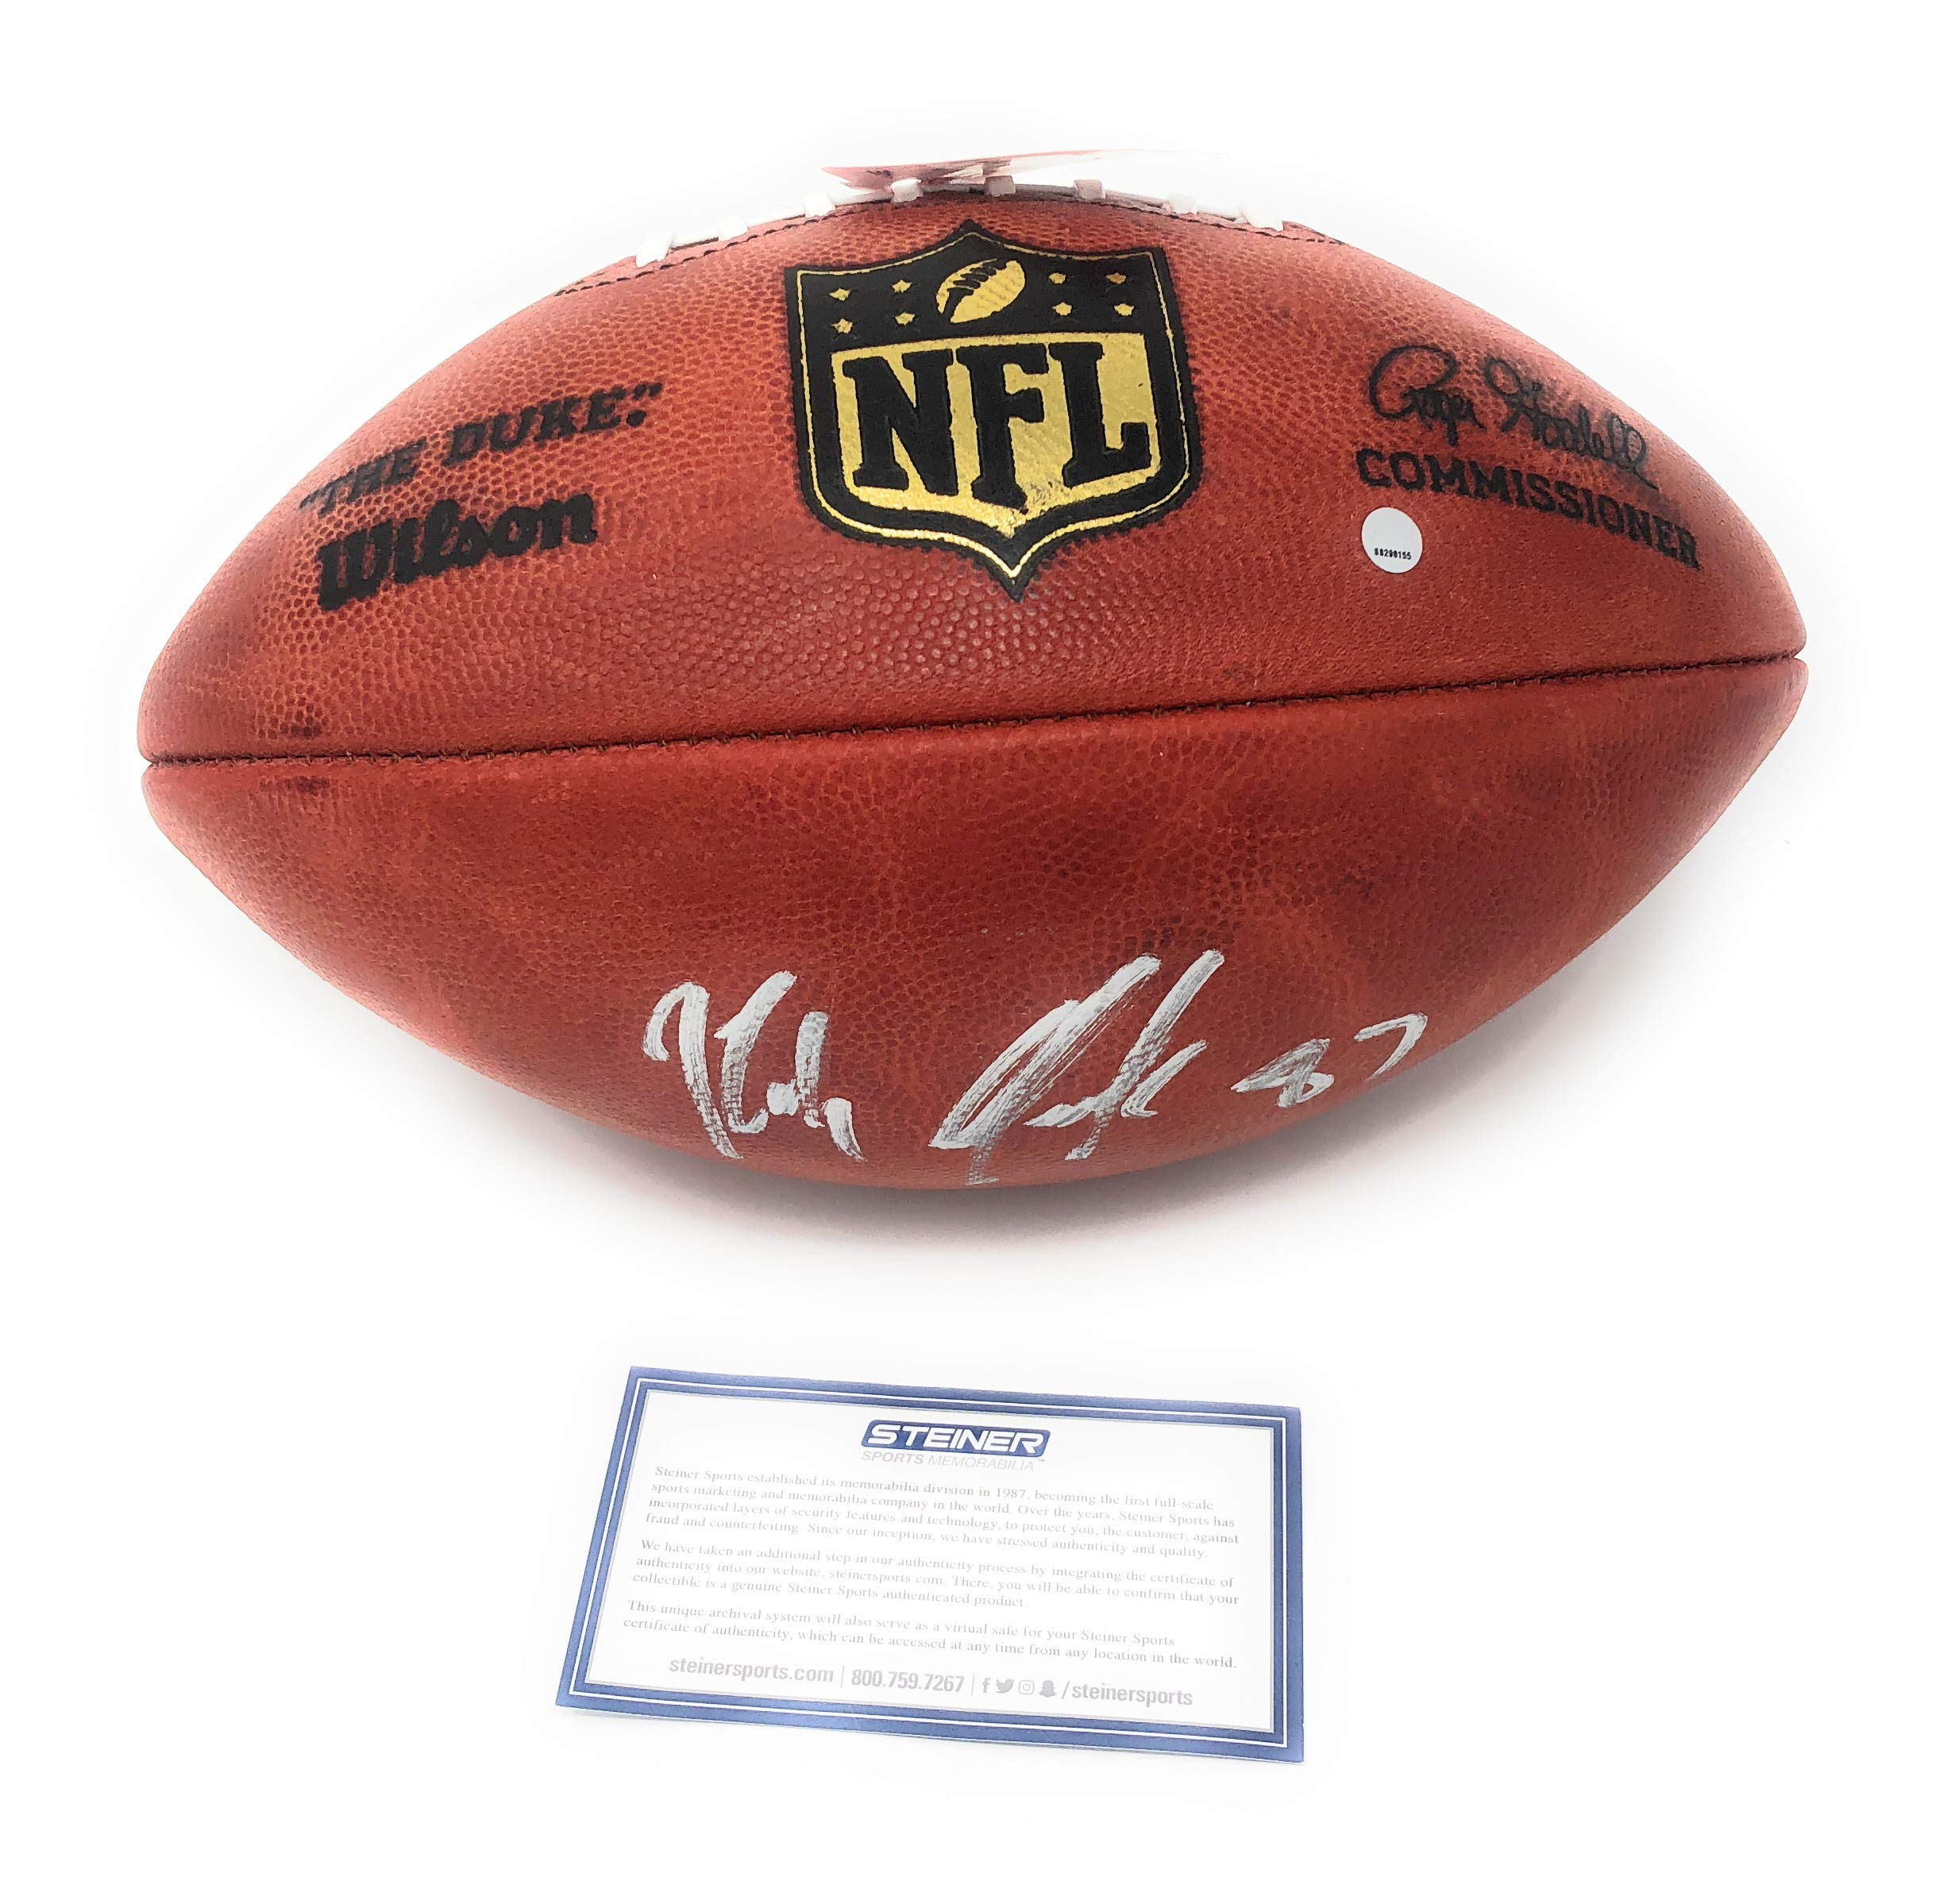 Rob Gronkowski New England Patriots Signed Autograph Authentic NFL Duke Football Steiner Sports Certified